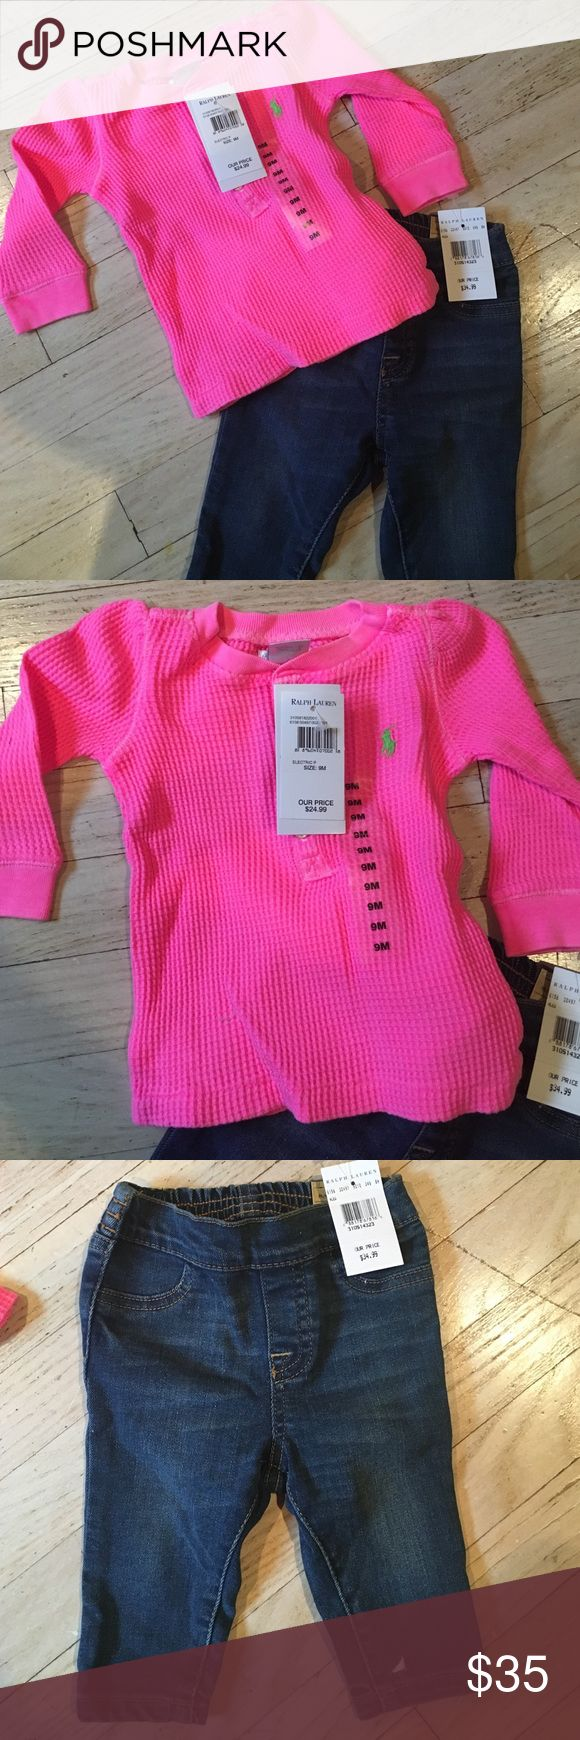 9m Ralph Lauren Polo Outfit Brand new with tags. I bought it as a gift & never gave it to the recipient. I even have the gift receipt. The top was $25 the jeggings were $35. I'll sell both pieces for $35 Polo by Ralph Lauren Matching Sets